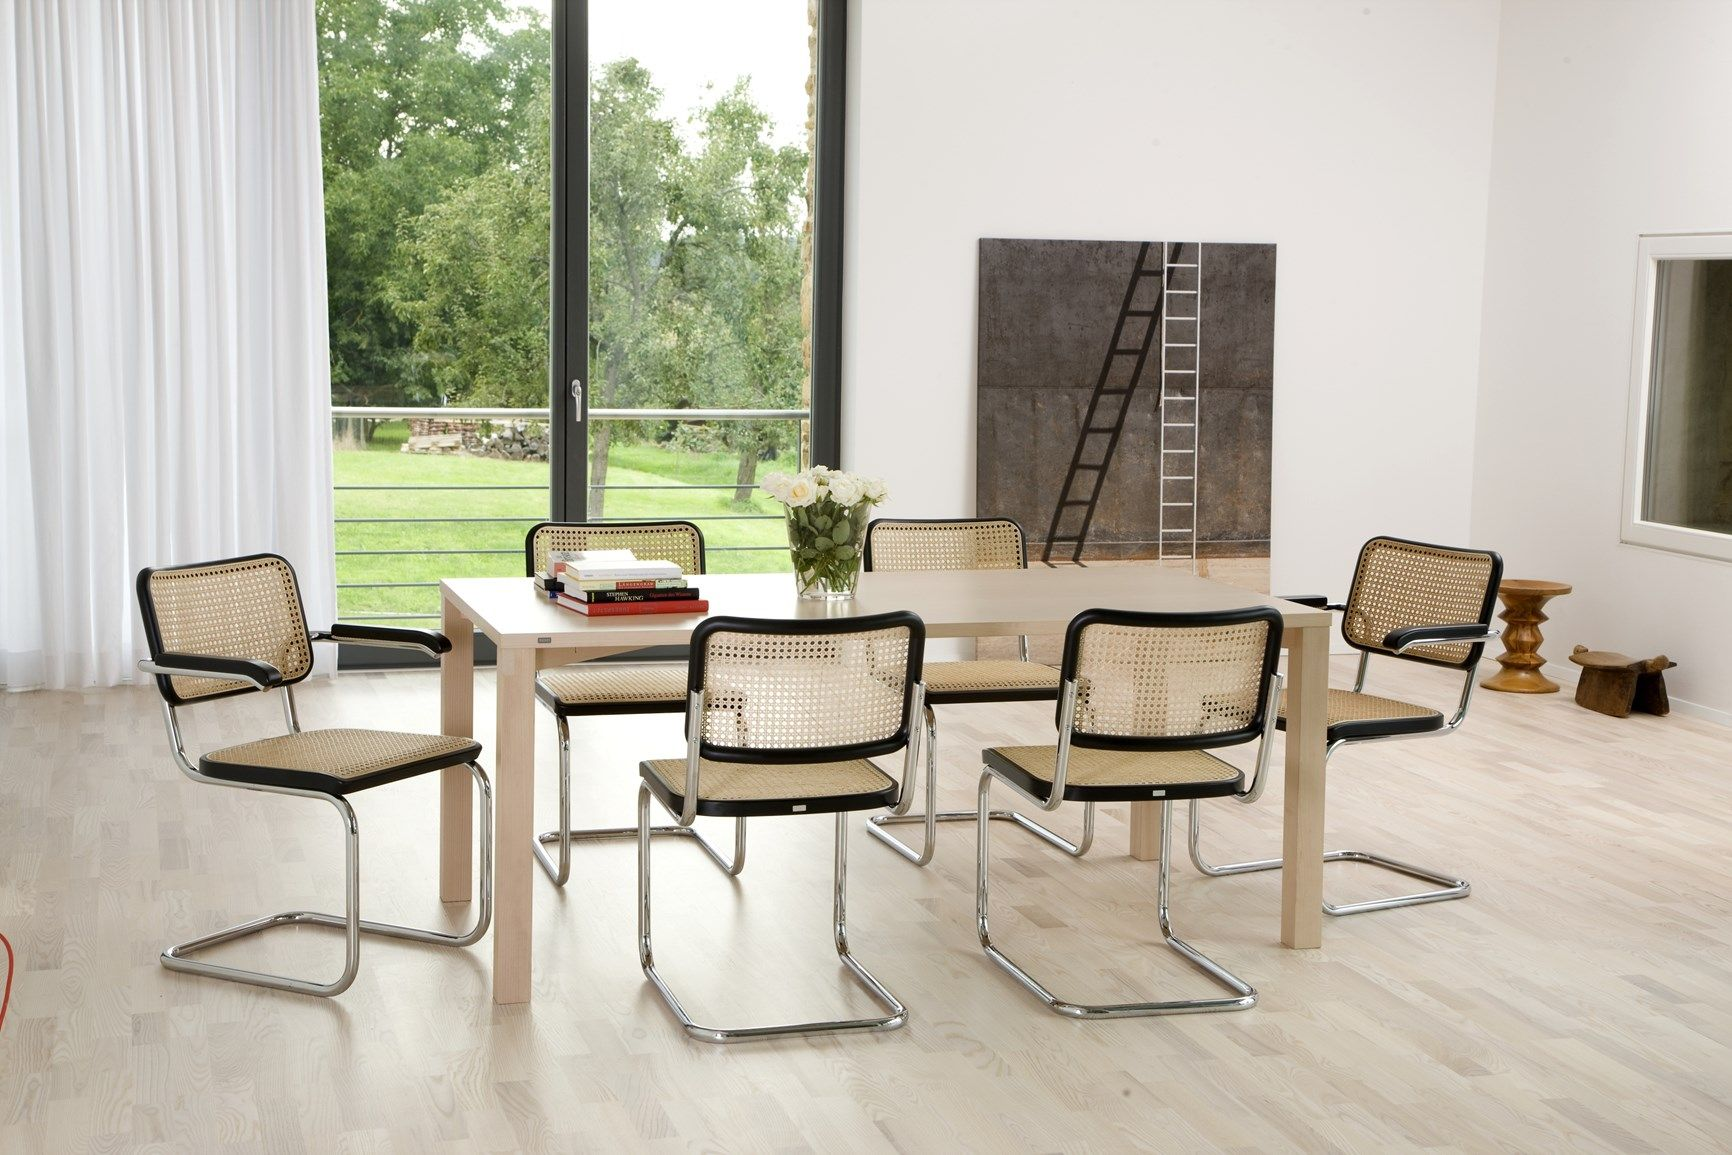 Thonet ad archiproducts milano for Mornata arredamenti milano